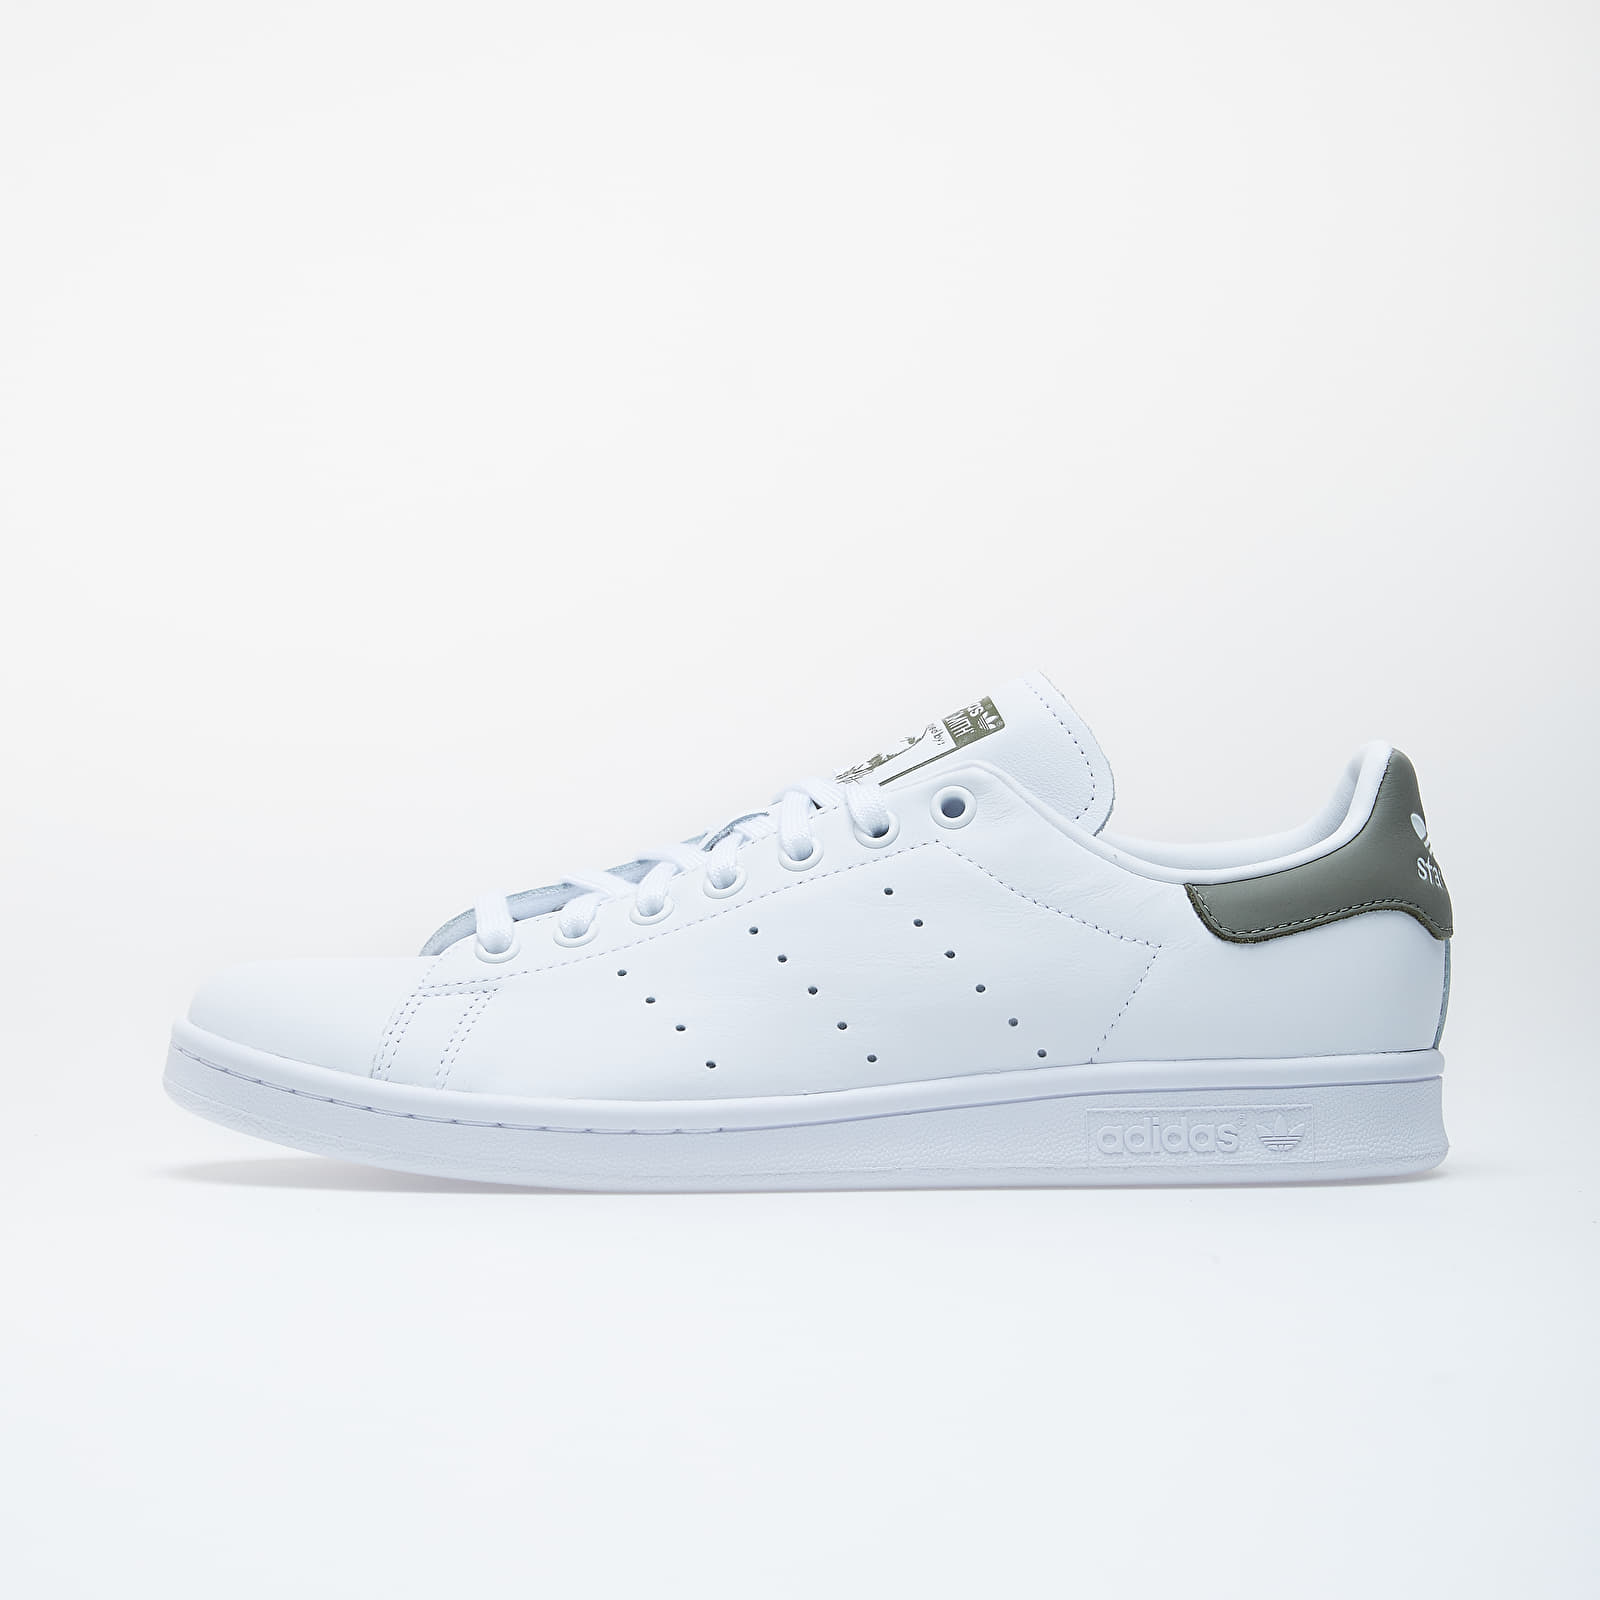 Férfi cipők adidas Stan Smith Ftw White/ Ftw White/ Legend Green